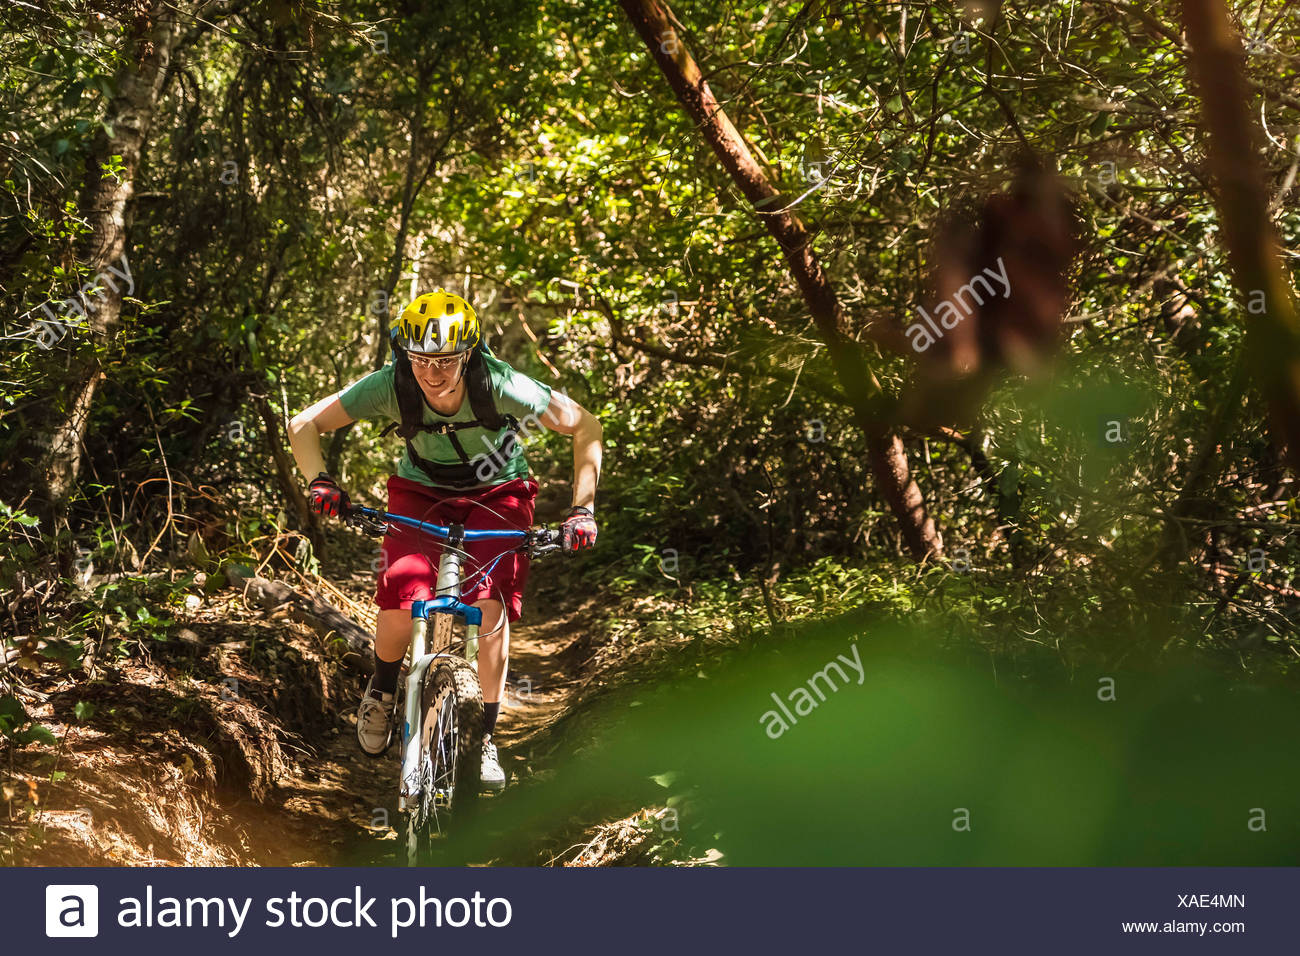 Young woman mountain biking, Soquel Demonstration State Forest, Santa Cruz, California, USA - Stock Image